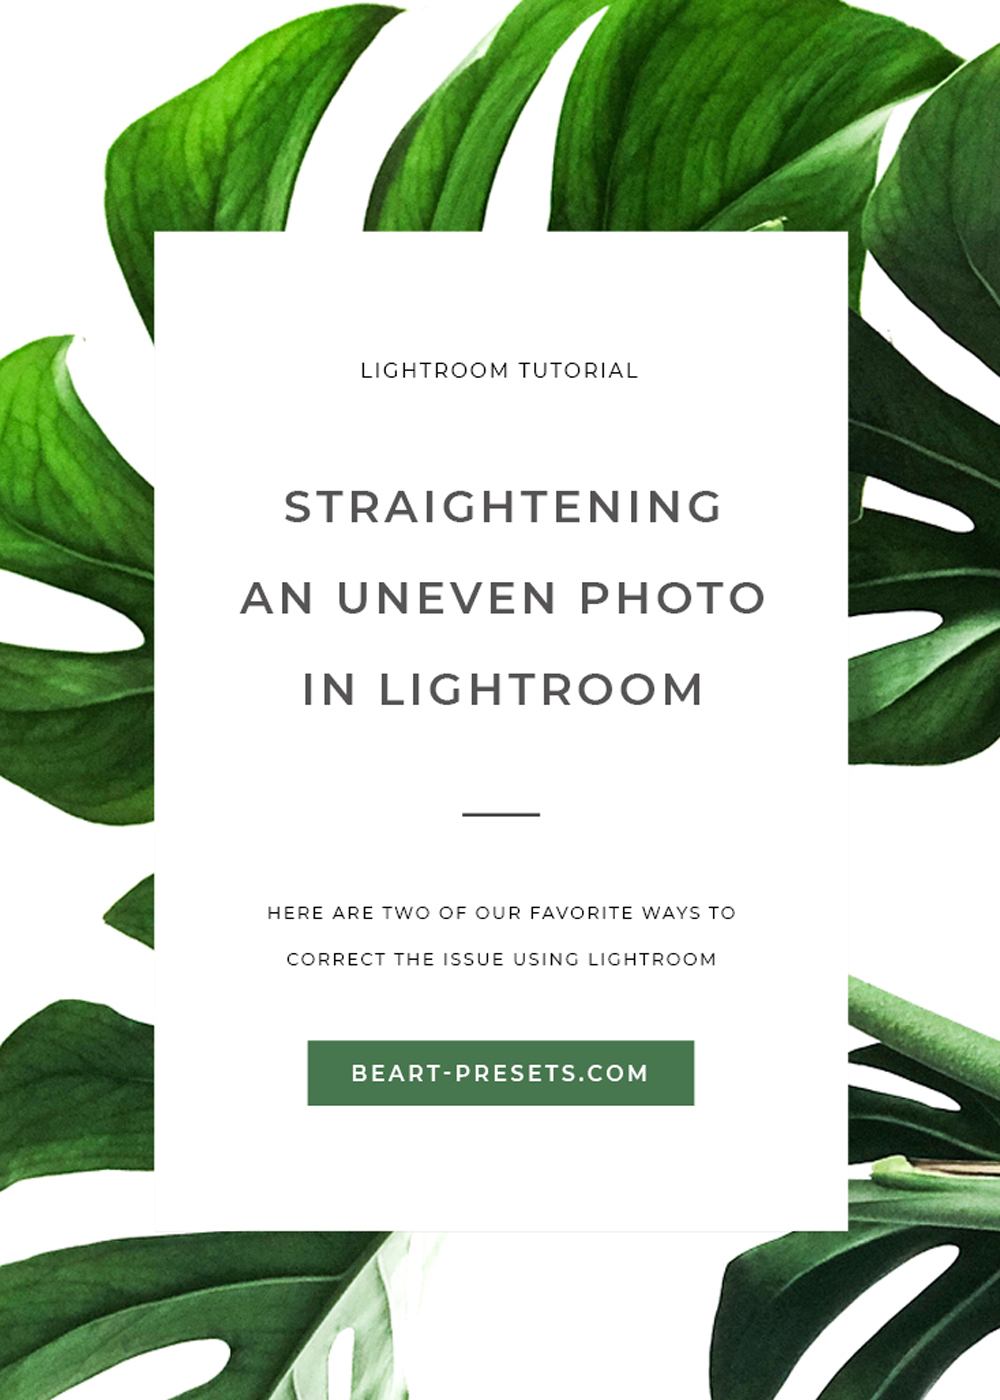 STRAIGHTENING AN UNEVEN PHOTO IN LIGHTROOM